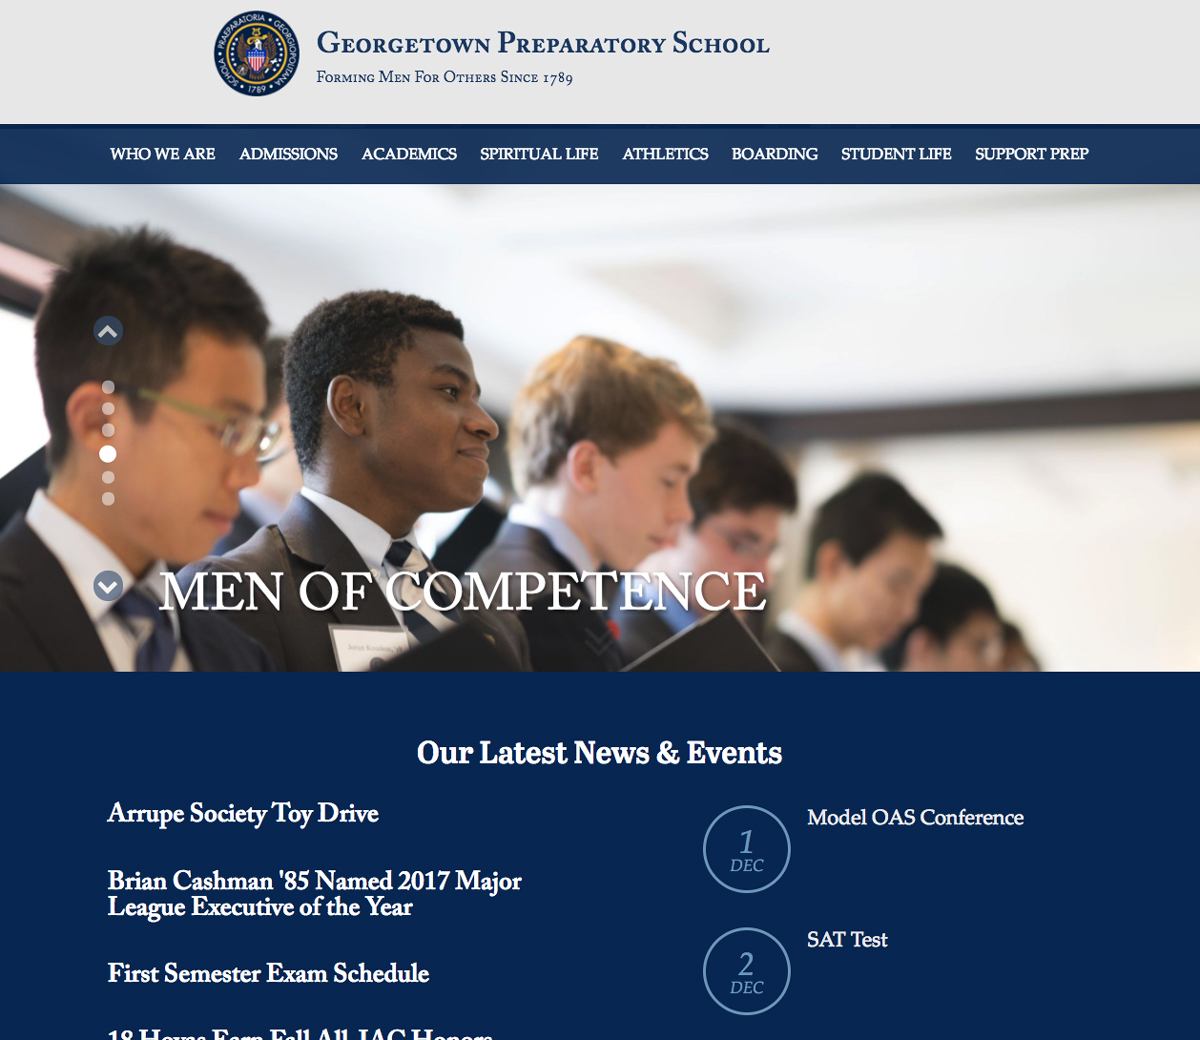 5 Easy Diy School Website Updates That Make A Big Difference